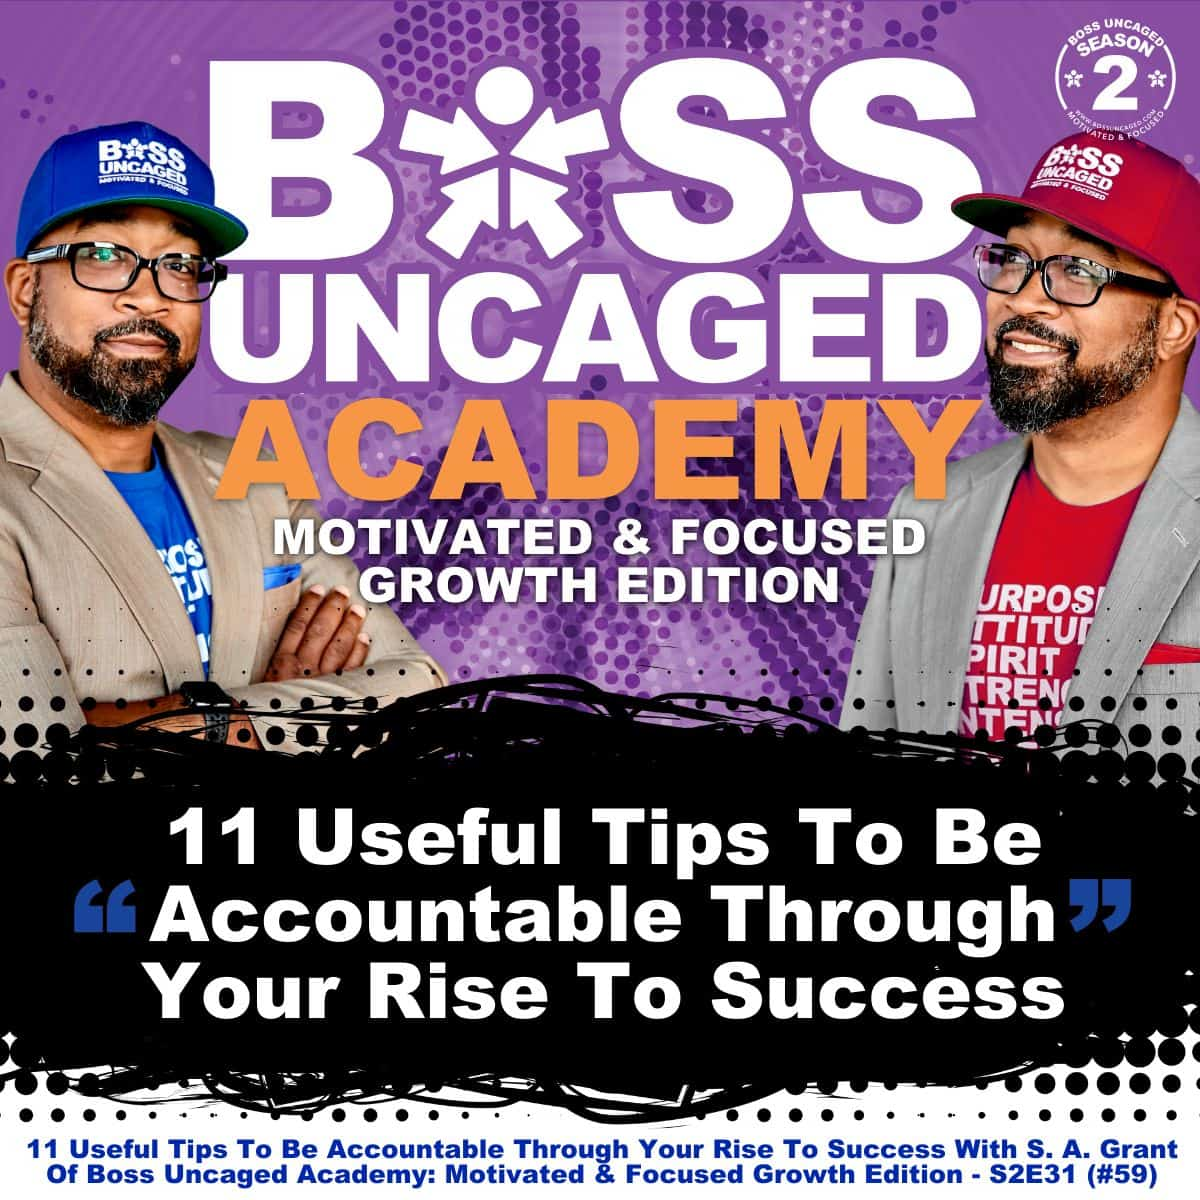 11 Useful Tips To Be Accountable Through Your Rise To Success With S. A. Grant Of Boss Uncaged Academy: Motivated & Focused Growth Edition - S2E31 (#59)